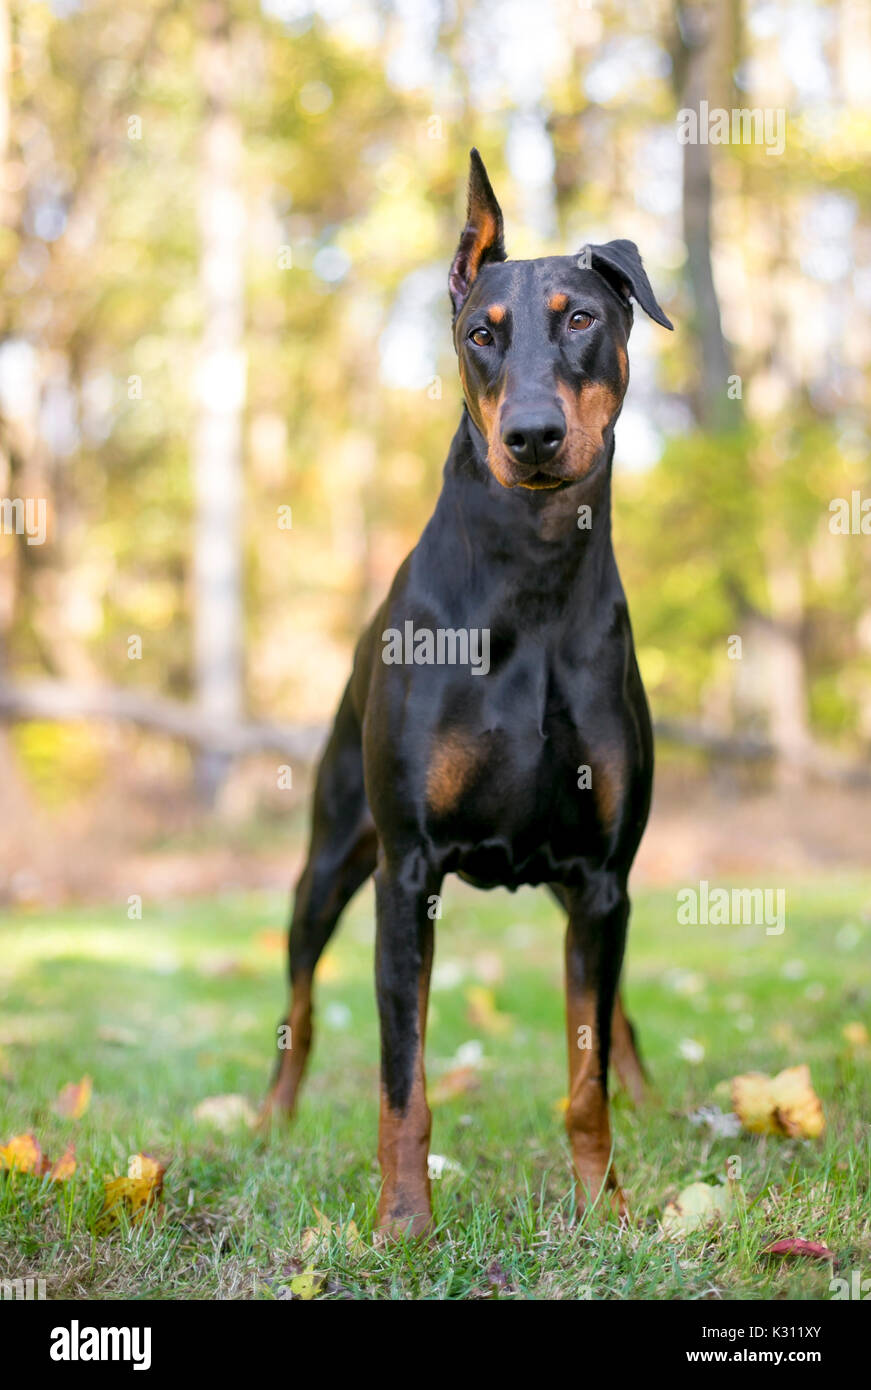 A black and red Doberman Pinscher dog standing outdoors - Stock Image